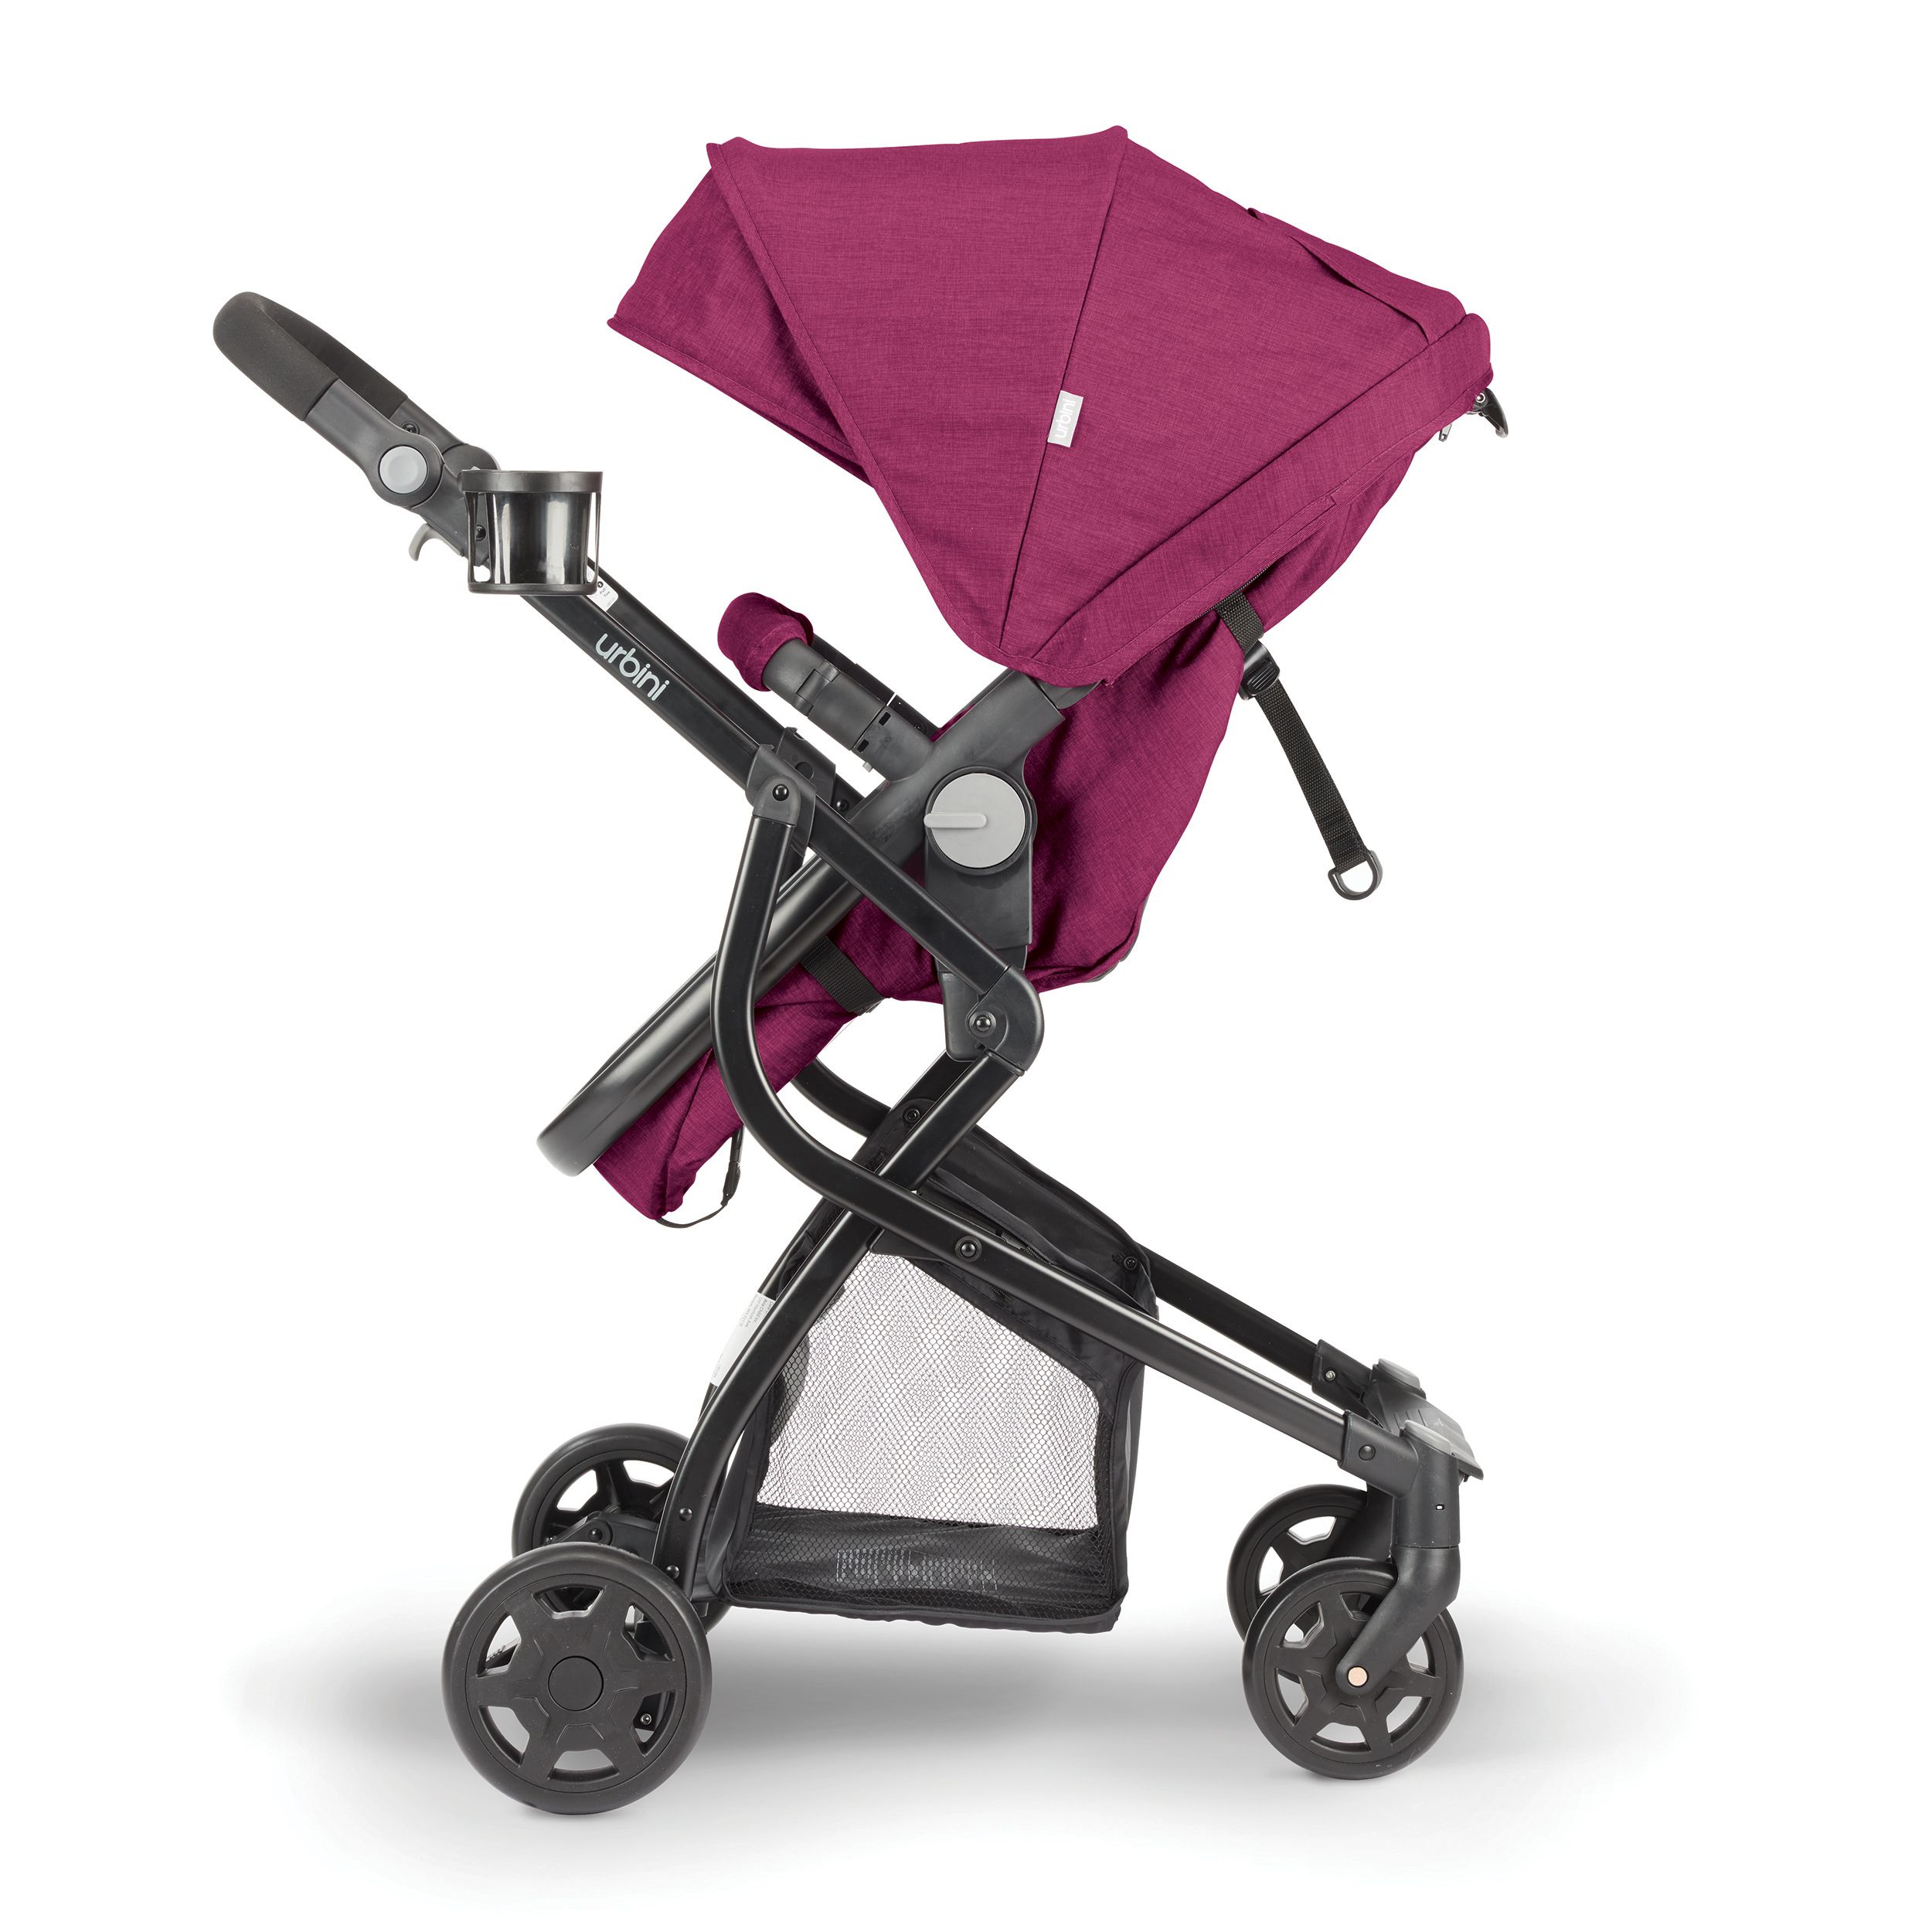 Baby Travel system, Baby seat, Stroller